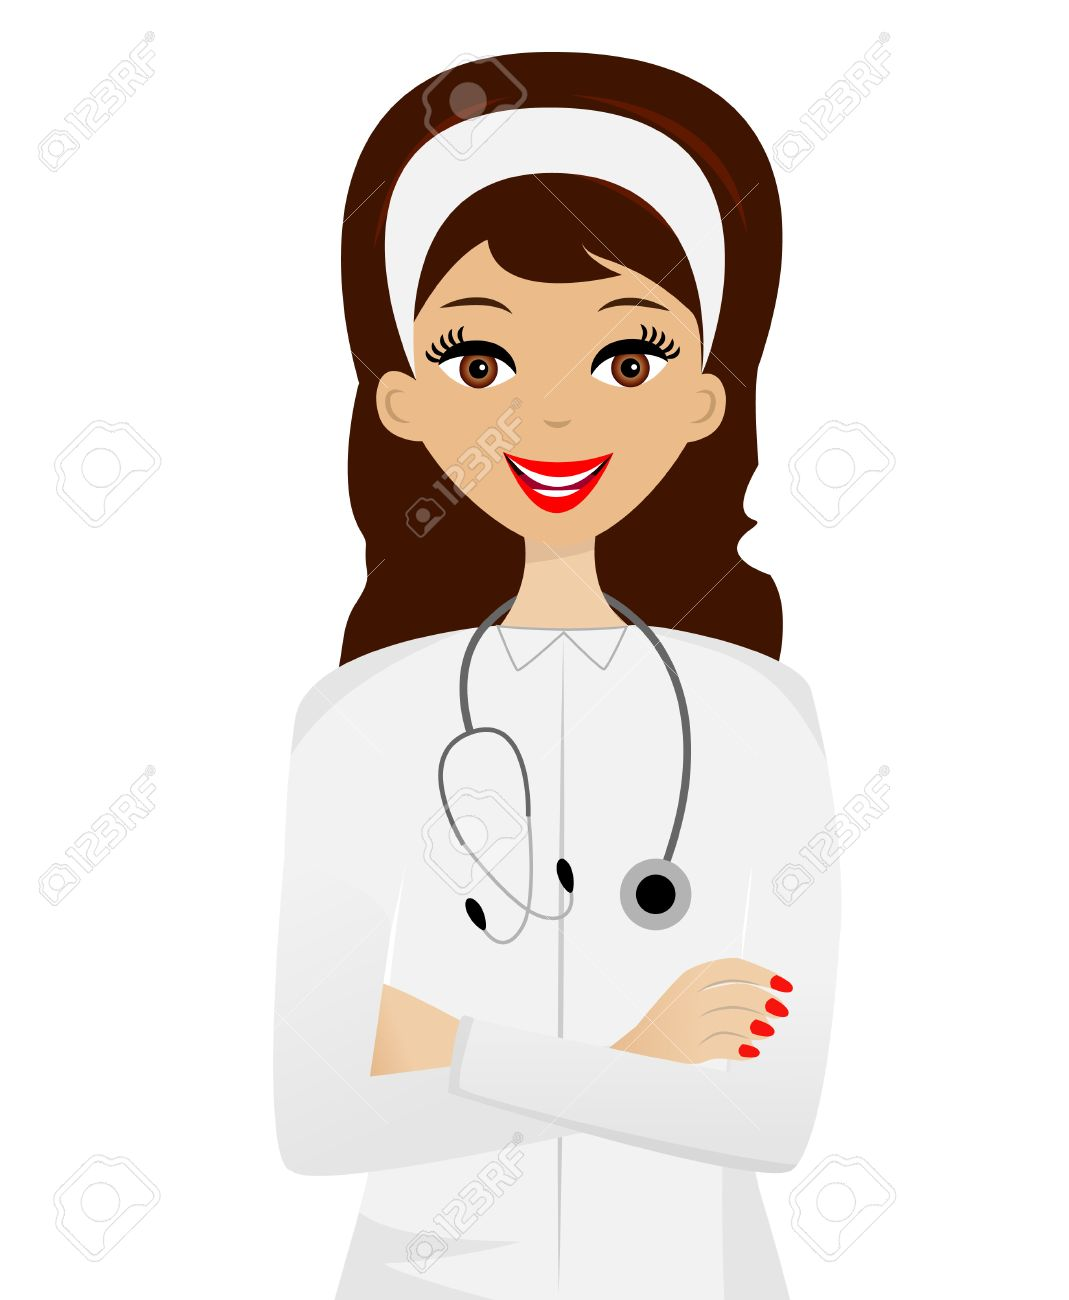 Doctor check up with pregnant woman clipart without words in the.